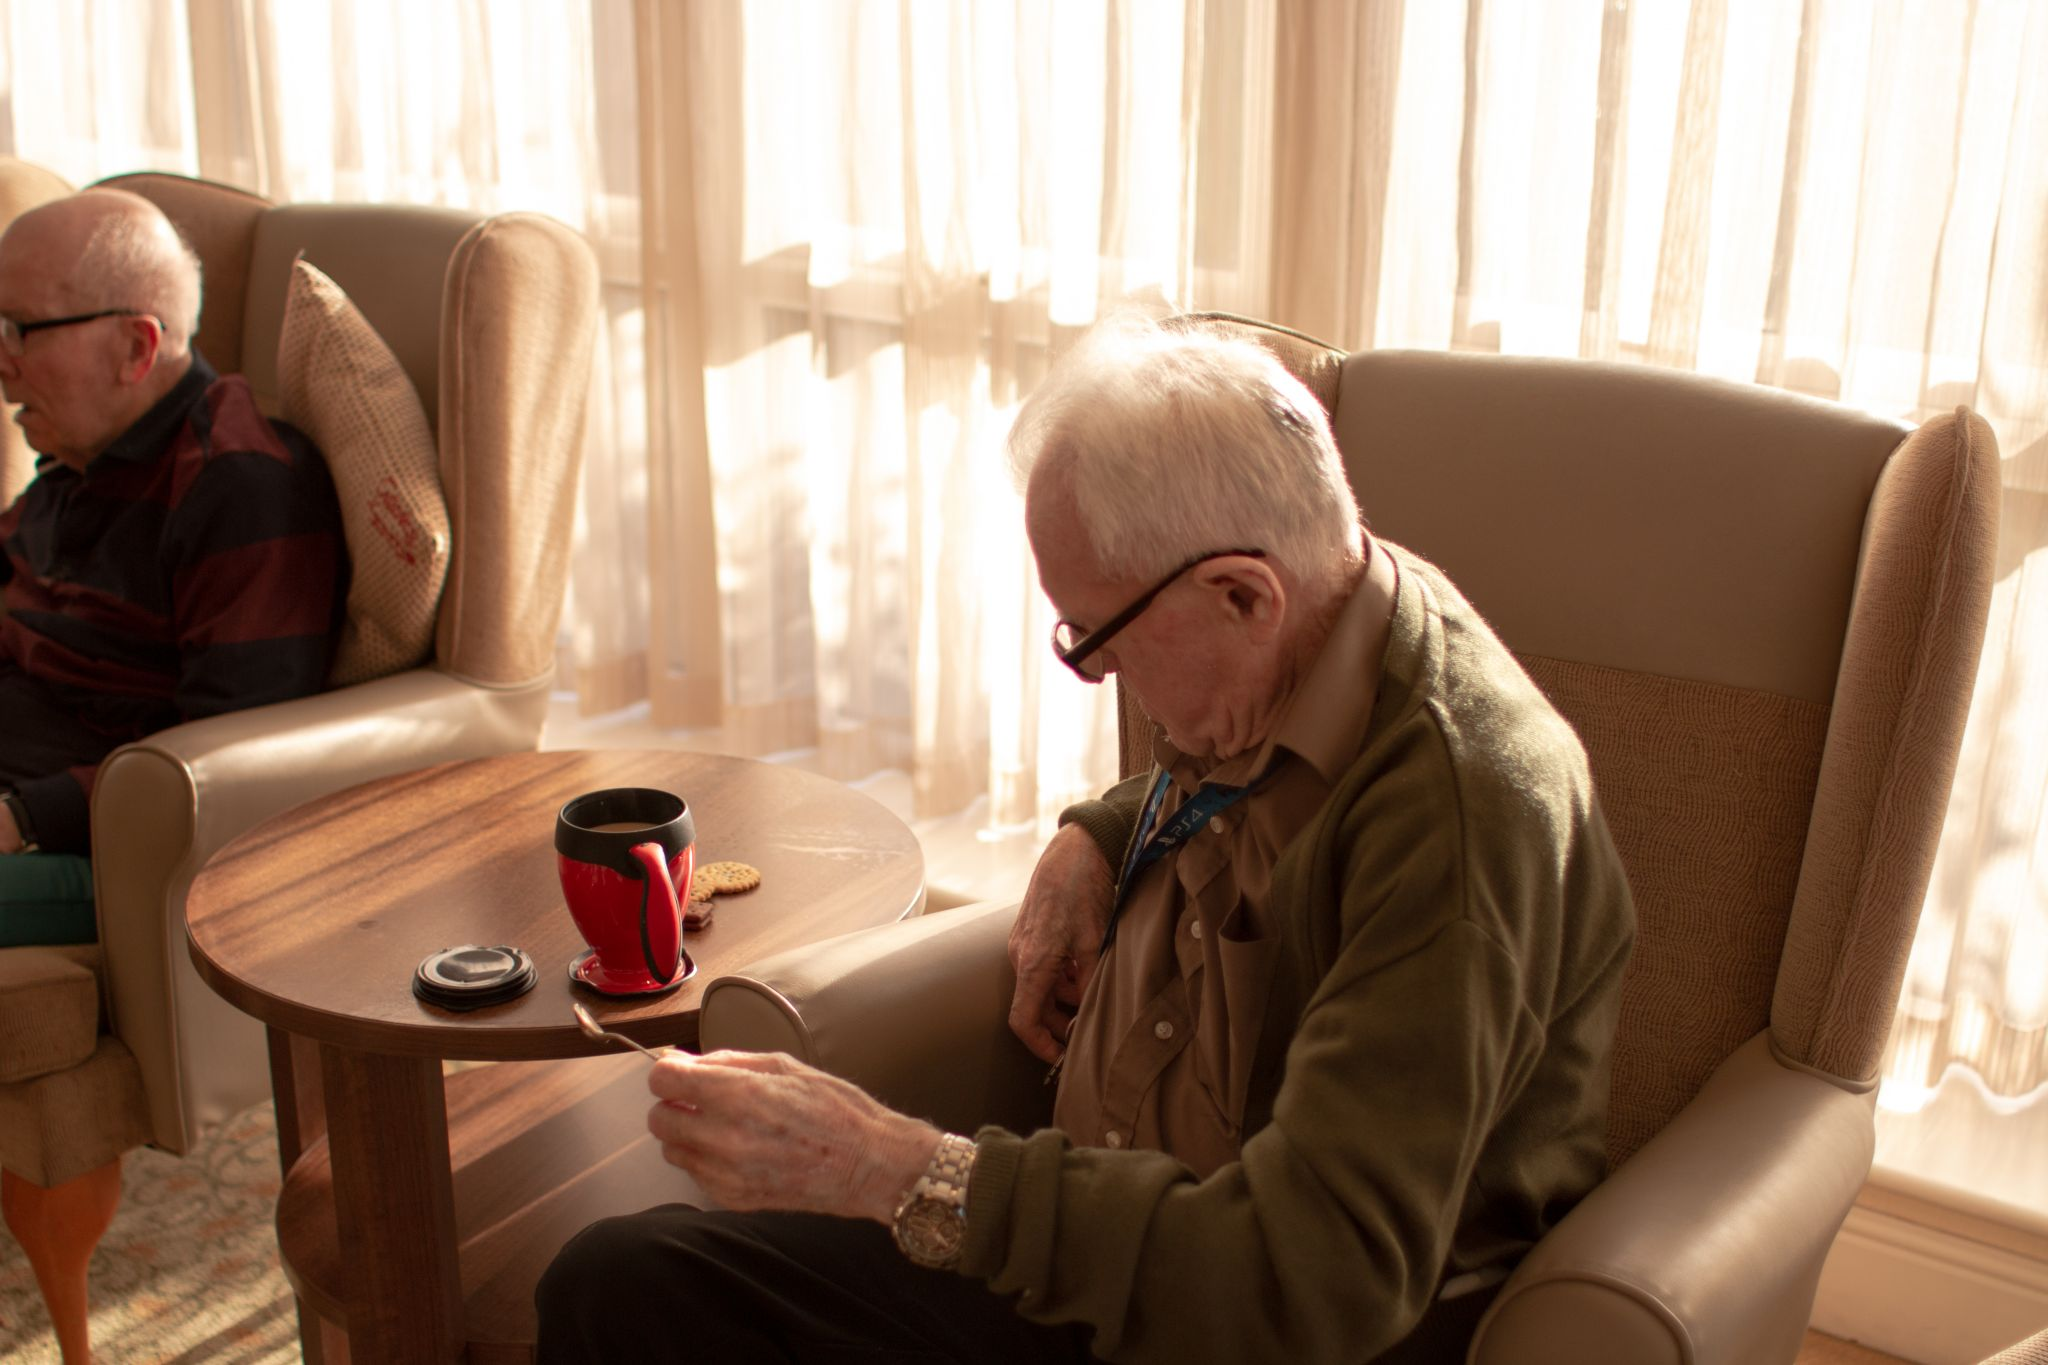 craig healthcare residents lifestyle photography hannah layford resident making tea